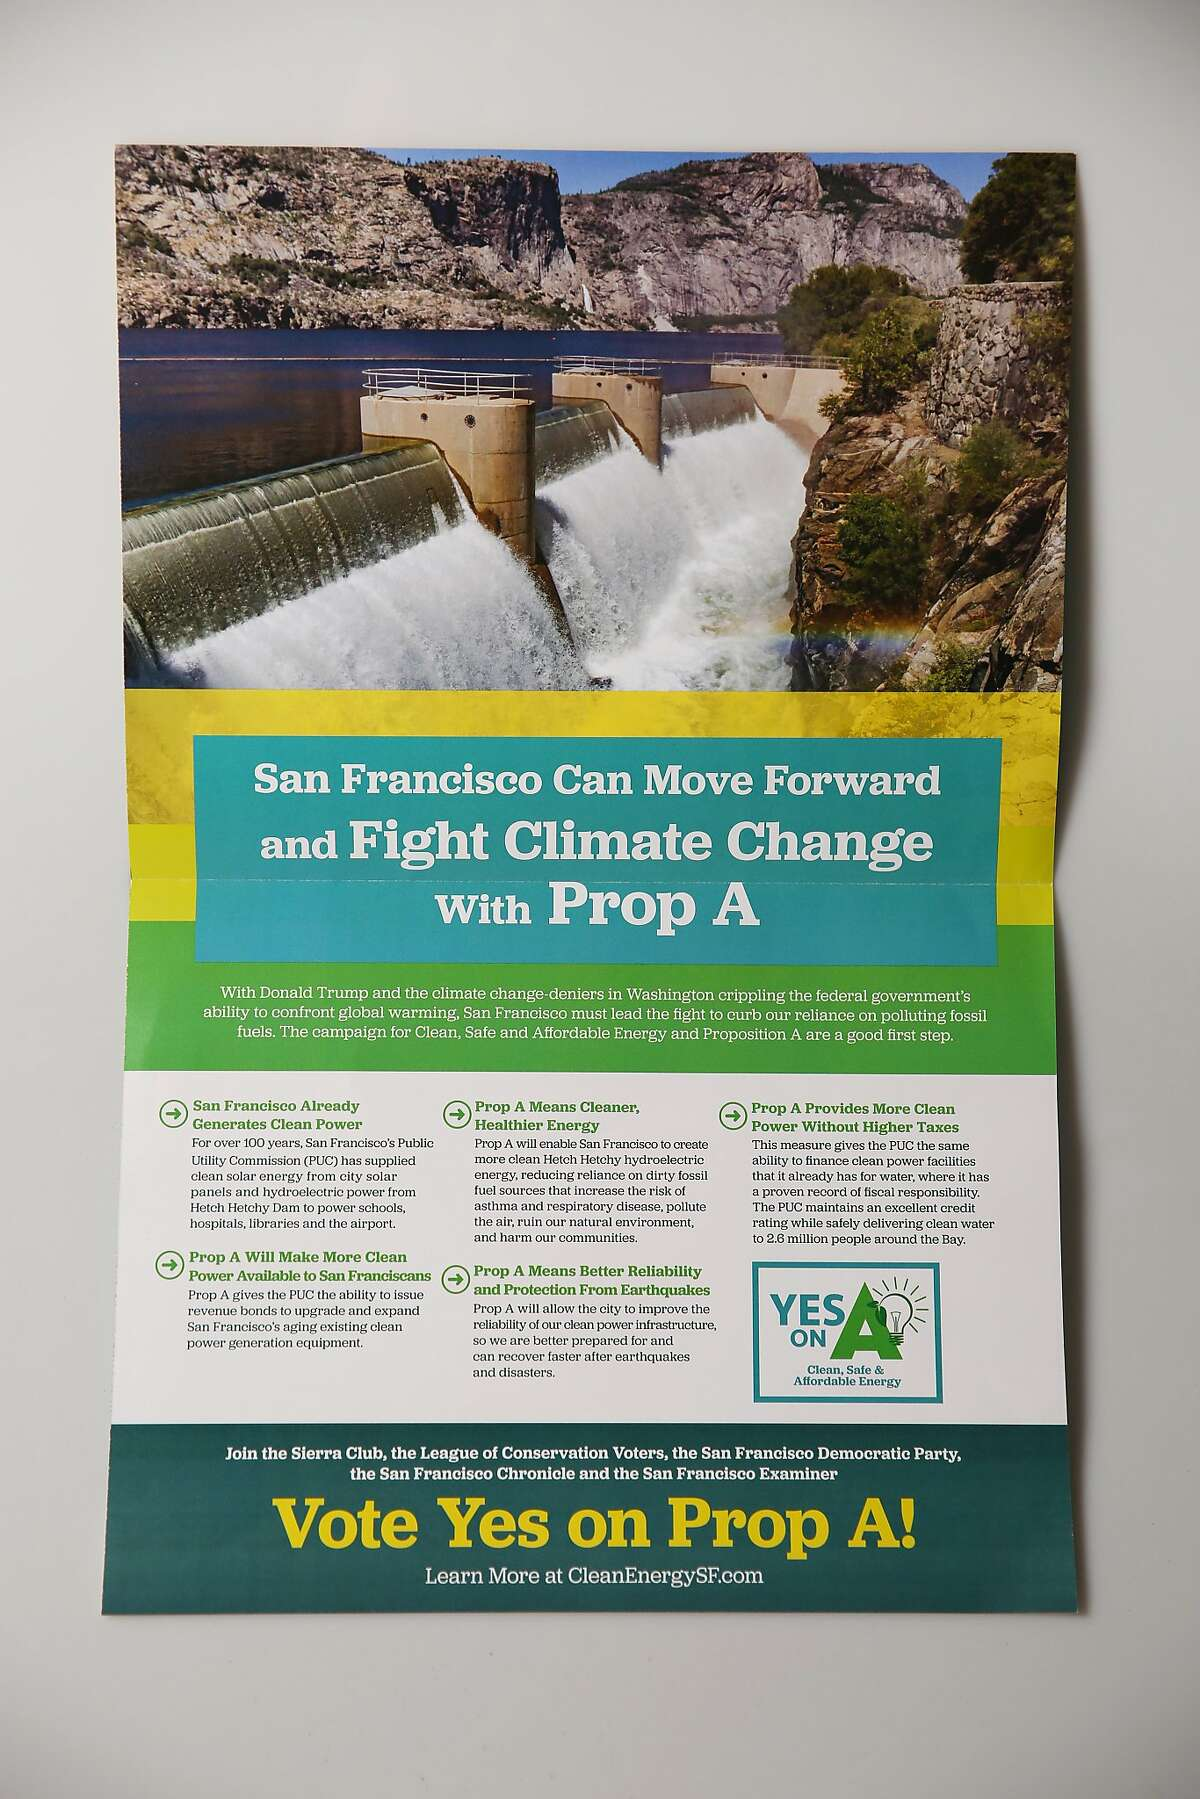 Mailer paid for by Clean, Safe & Affordable Energy, Yes on A Committee major funding by AECOM Technology Corporation, Wednesday, May 30, 2018, in San Francisco, Calif.